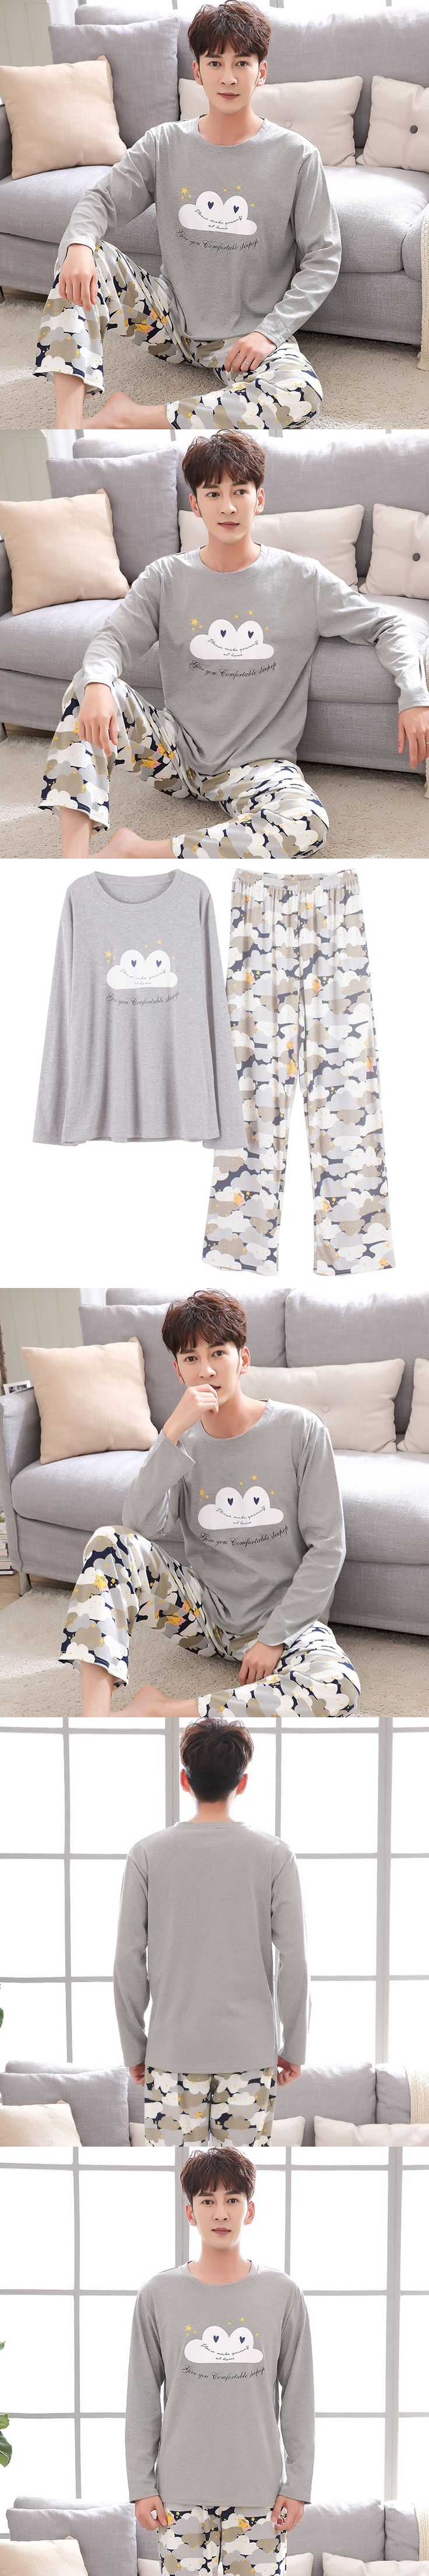 New Arrivals Cotton Cartoon Pajamas Sets For Men Spring Autumn Long Sleeve Pyjamas Male Sleepwear Suit Lounge Wear Home Clothing